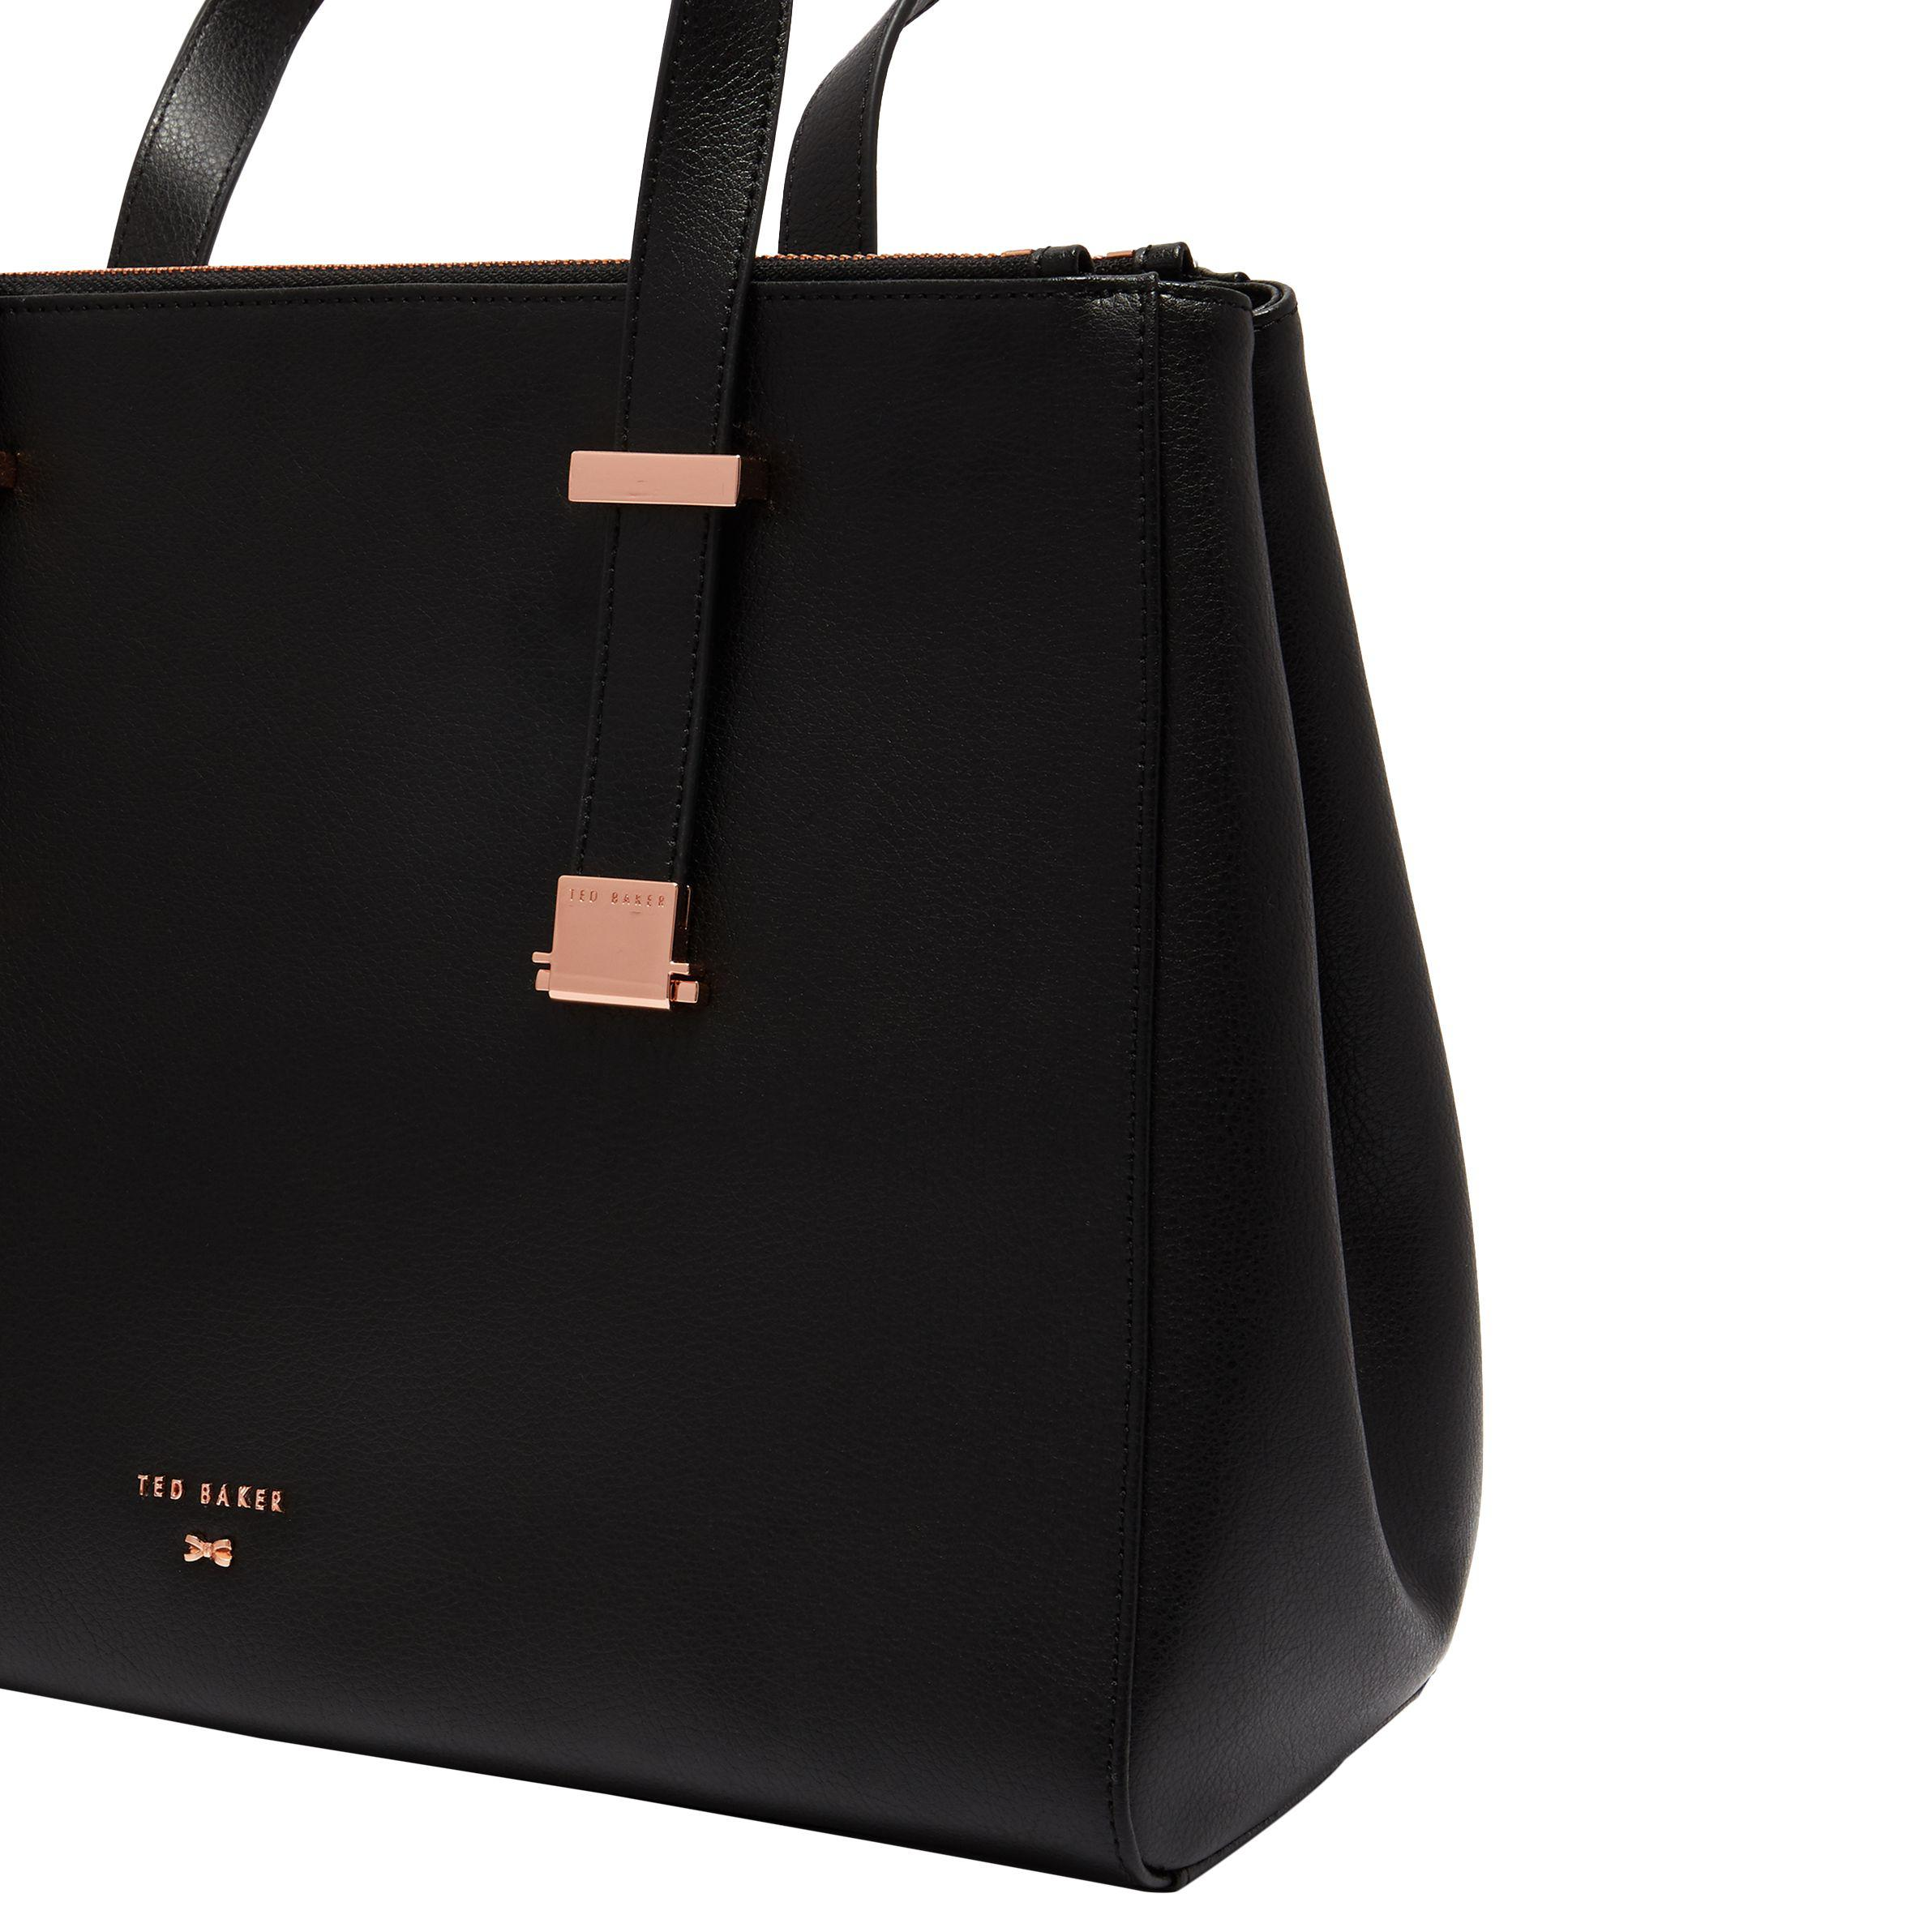 8cda8dfaa5 Ted Baker Aminaa Large Leather Tote Bag in Black - Lyst